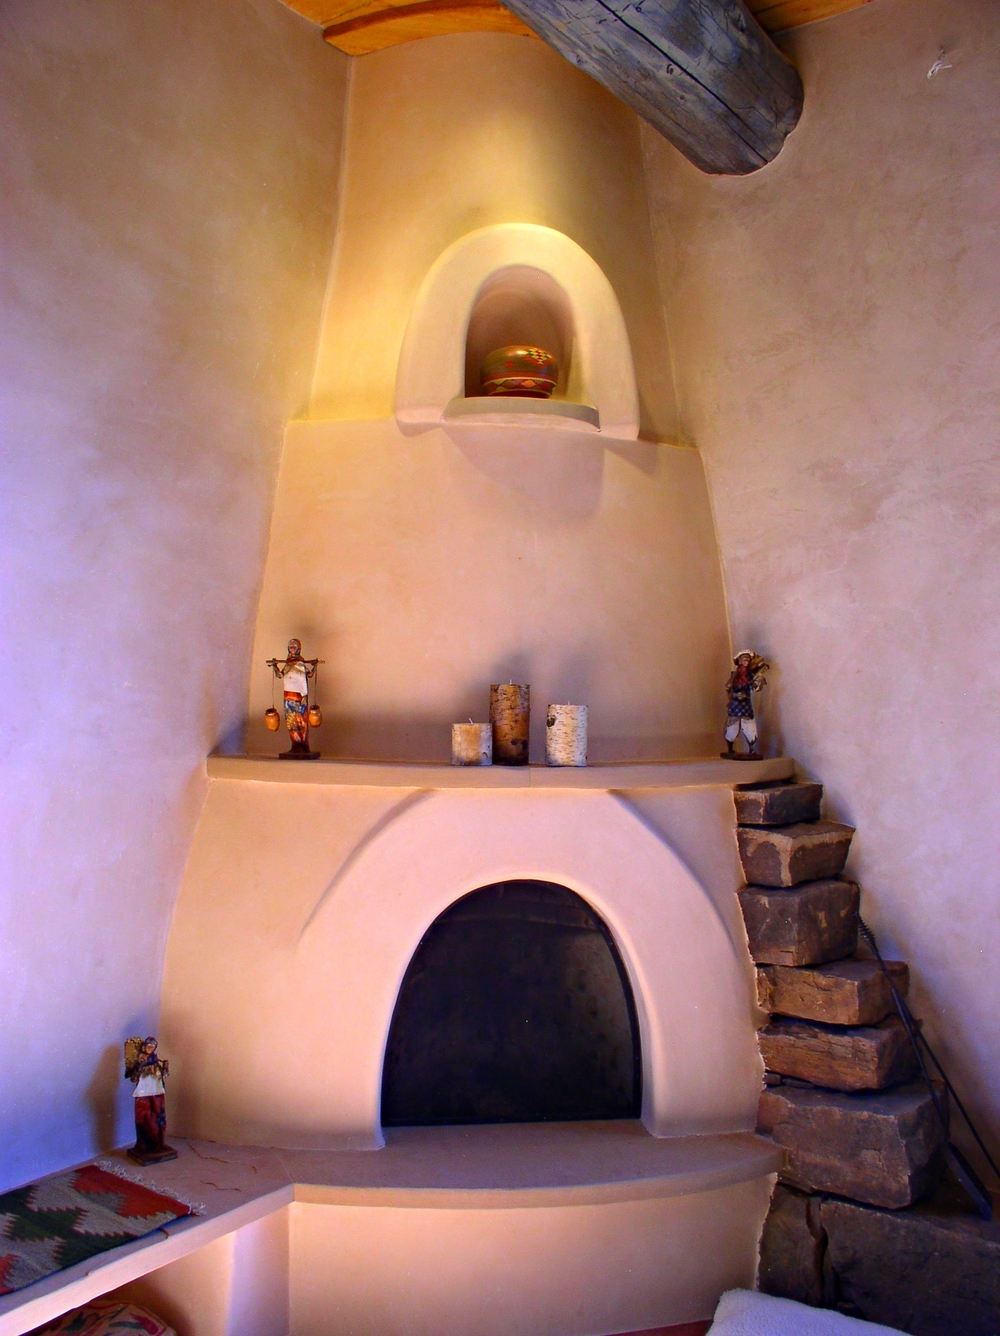 Fireplace masonry by Juan Madrid.